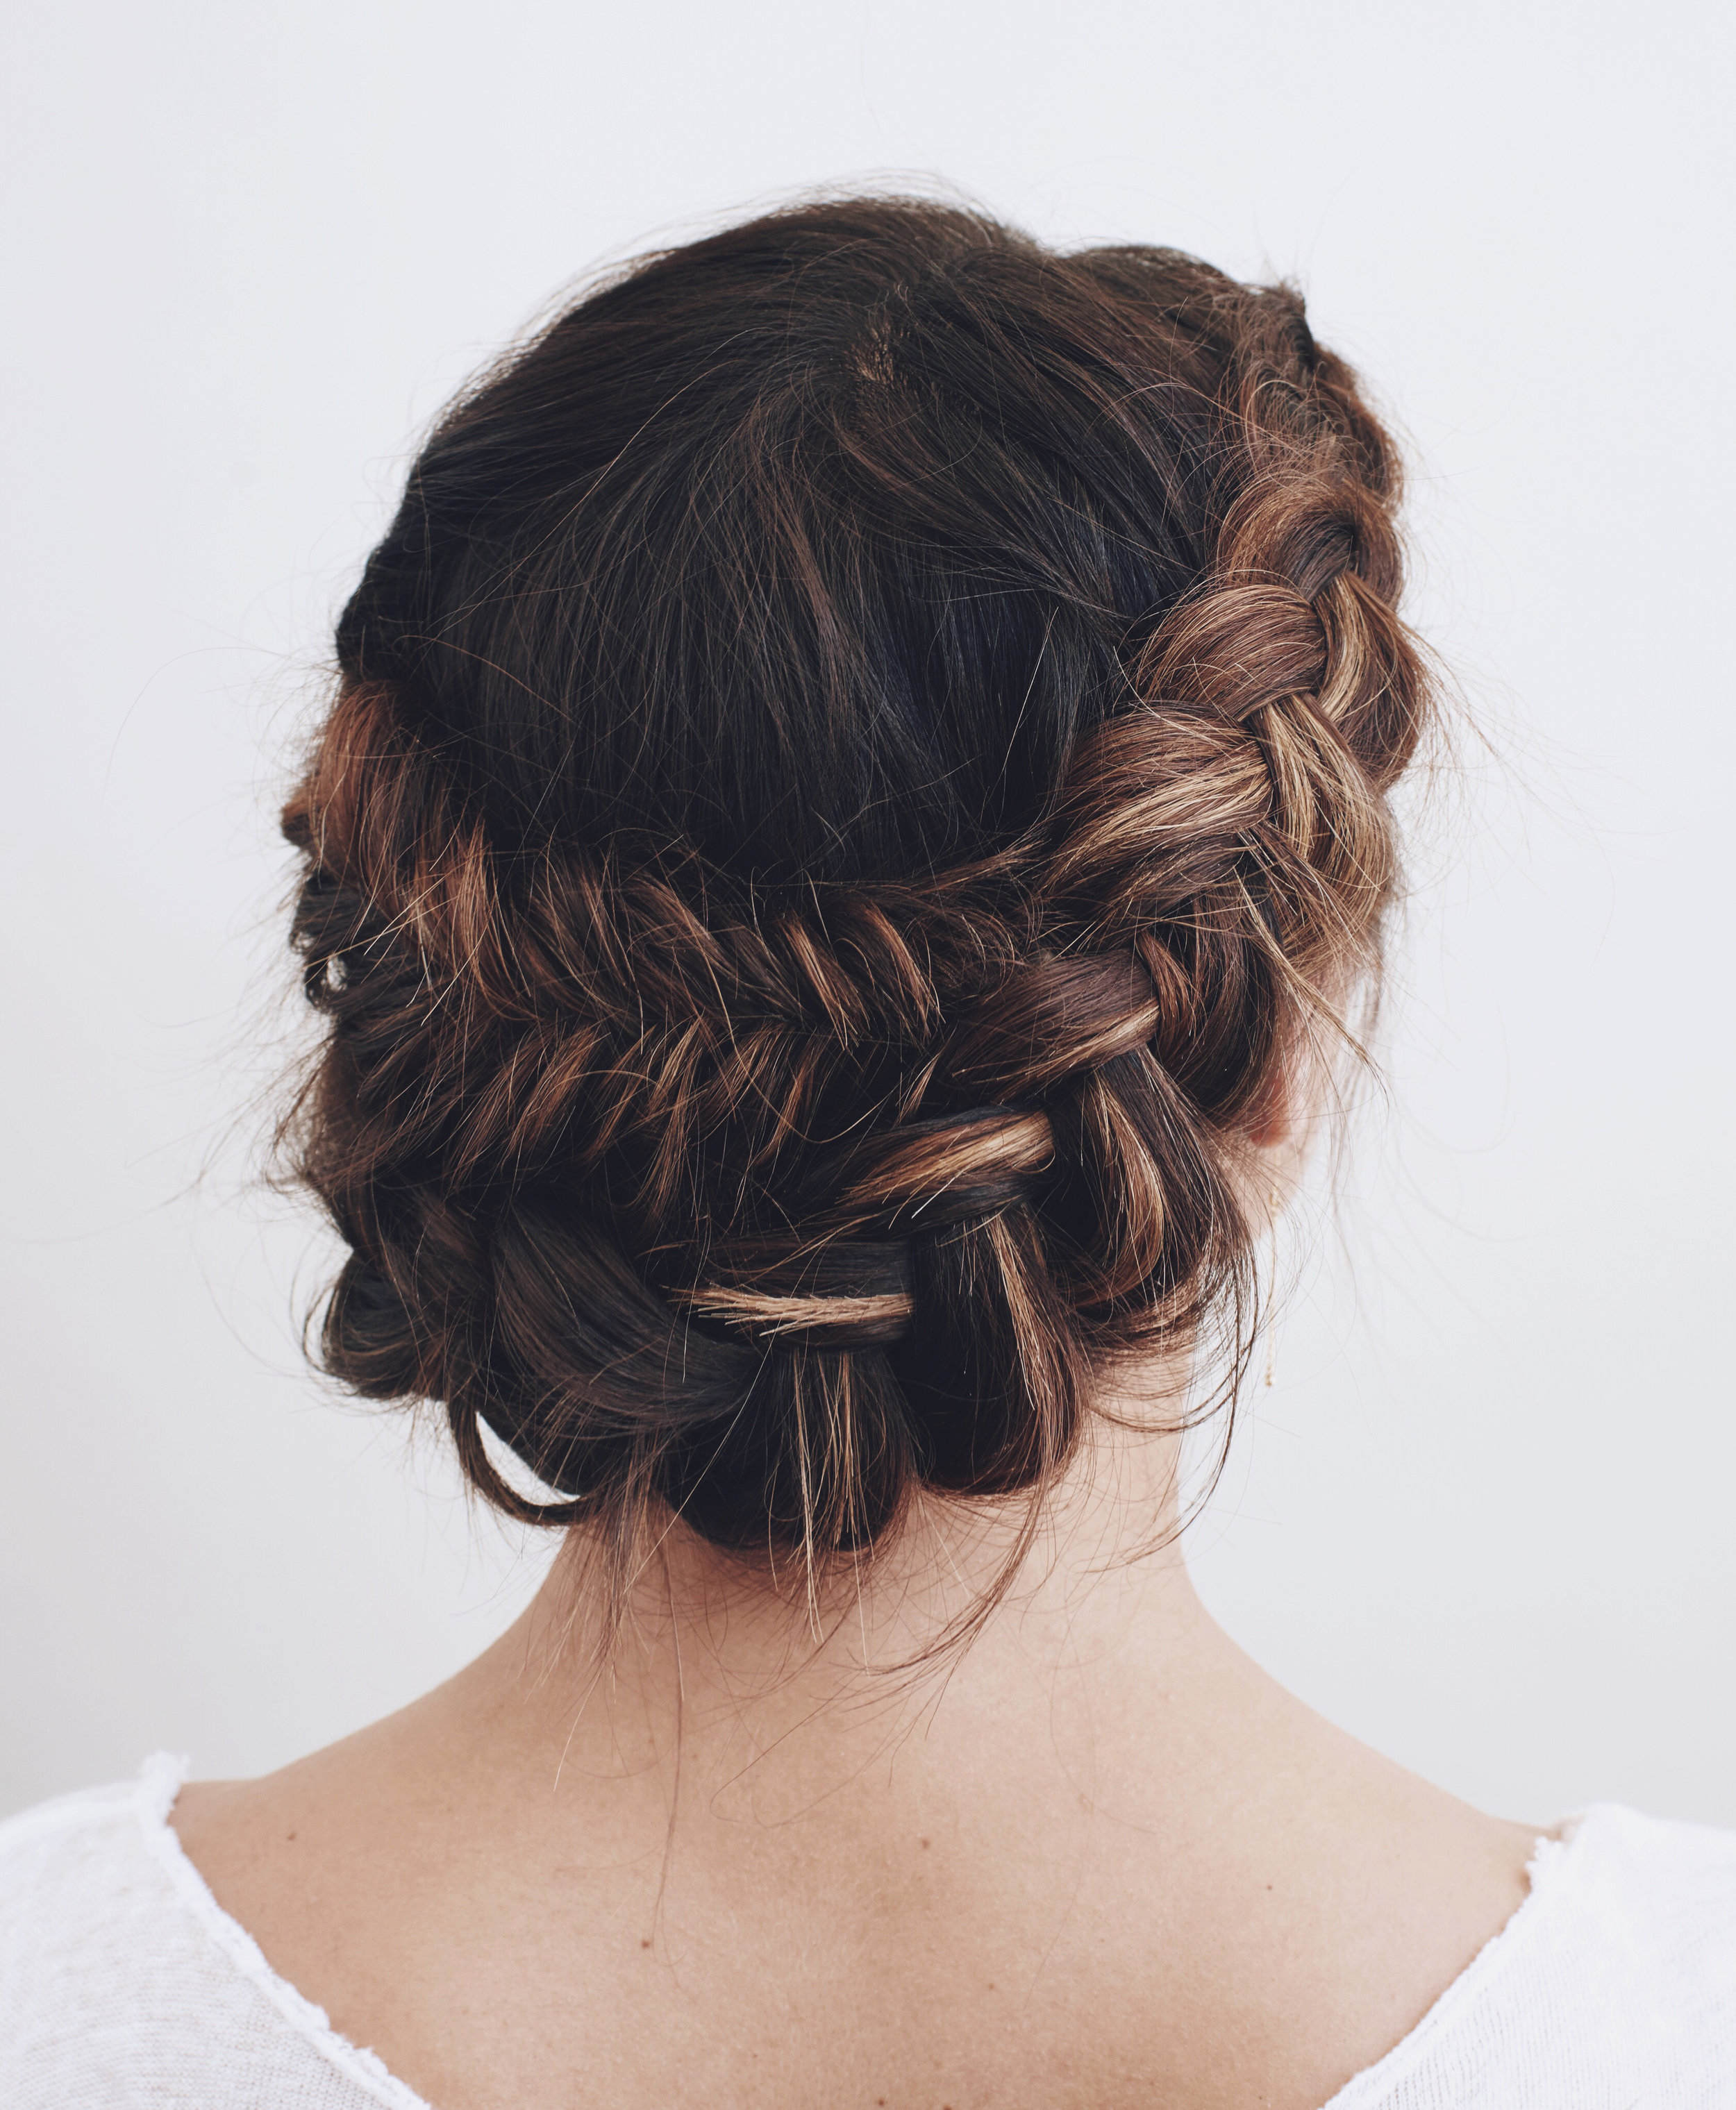 UPDOS THAT HOLD